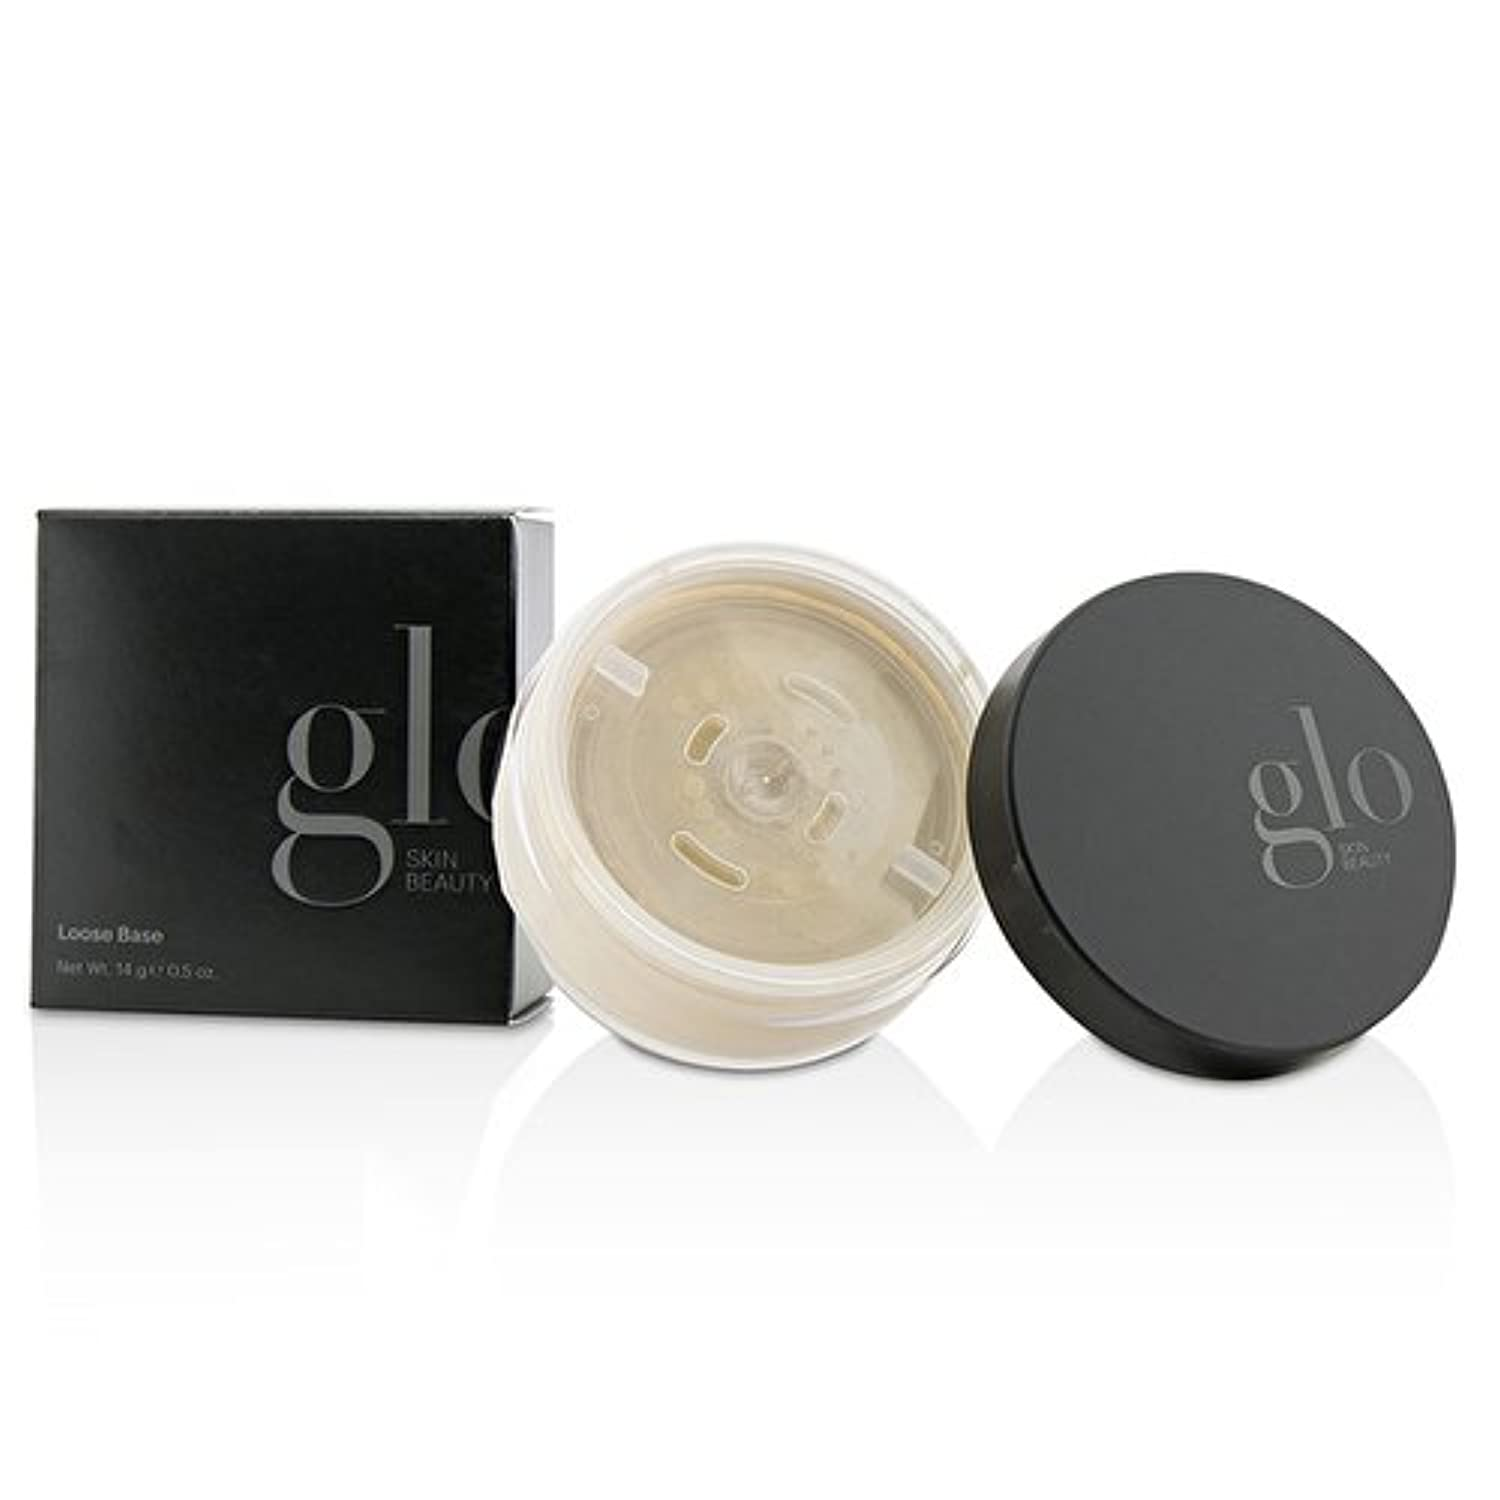 Glo Skin Beauty Loose Base (Mineral Foundation) - # Natural Fair 14g/0.5oz並行輸入品